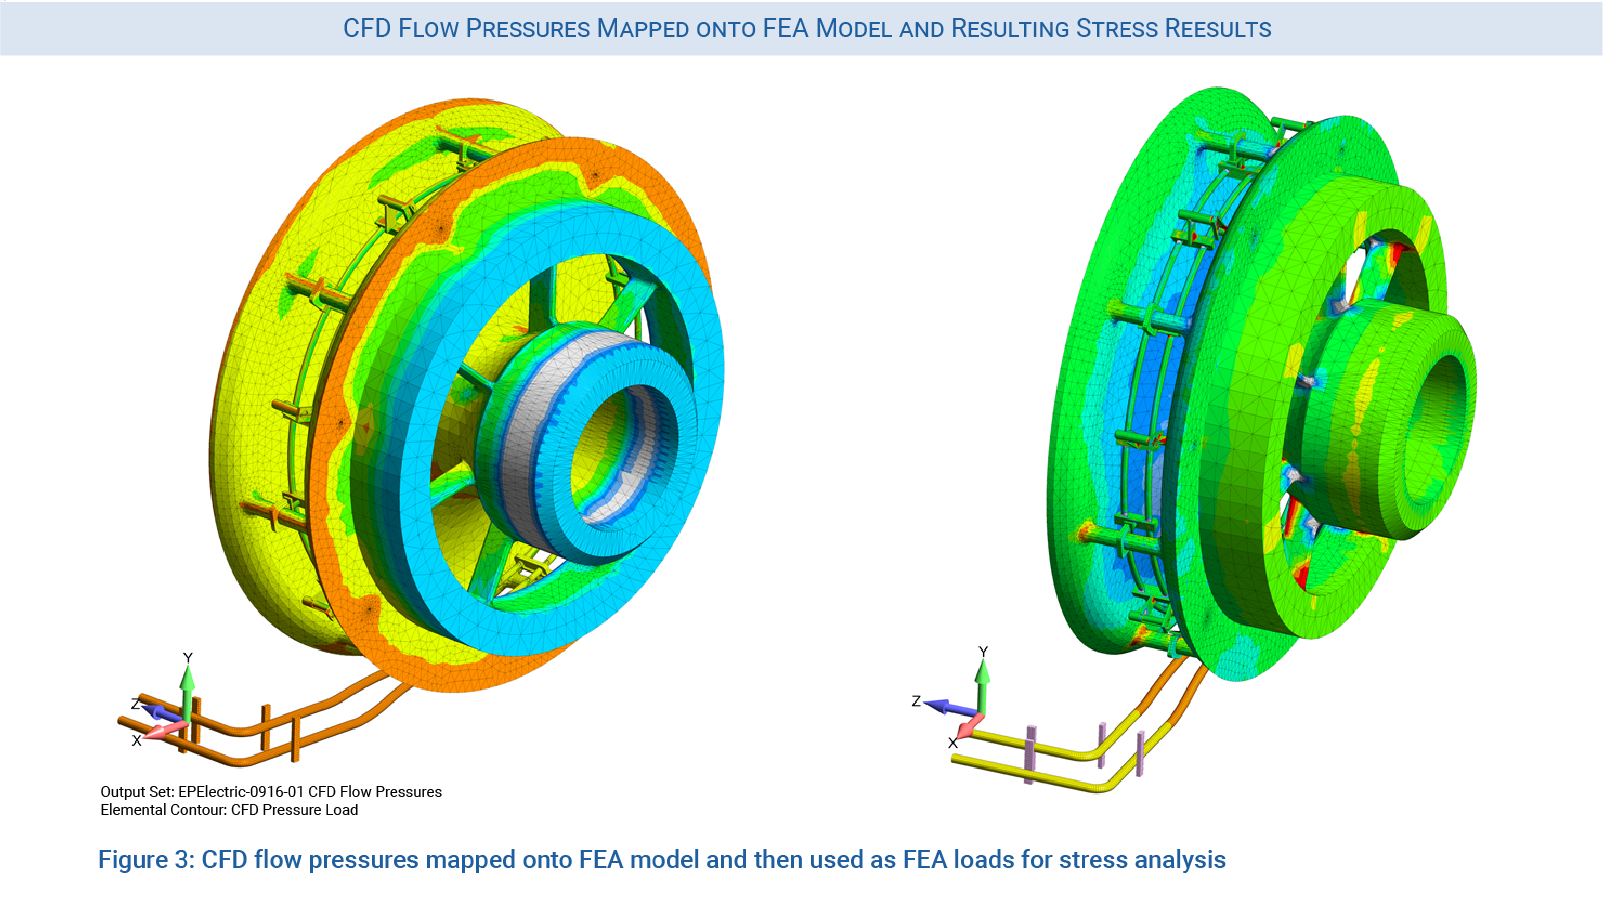 CFD flow pressure mapped onto FEA model and then used as loads for stress analysis